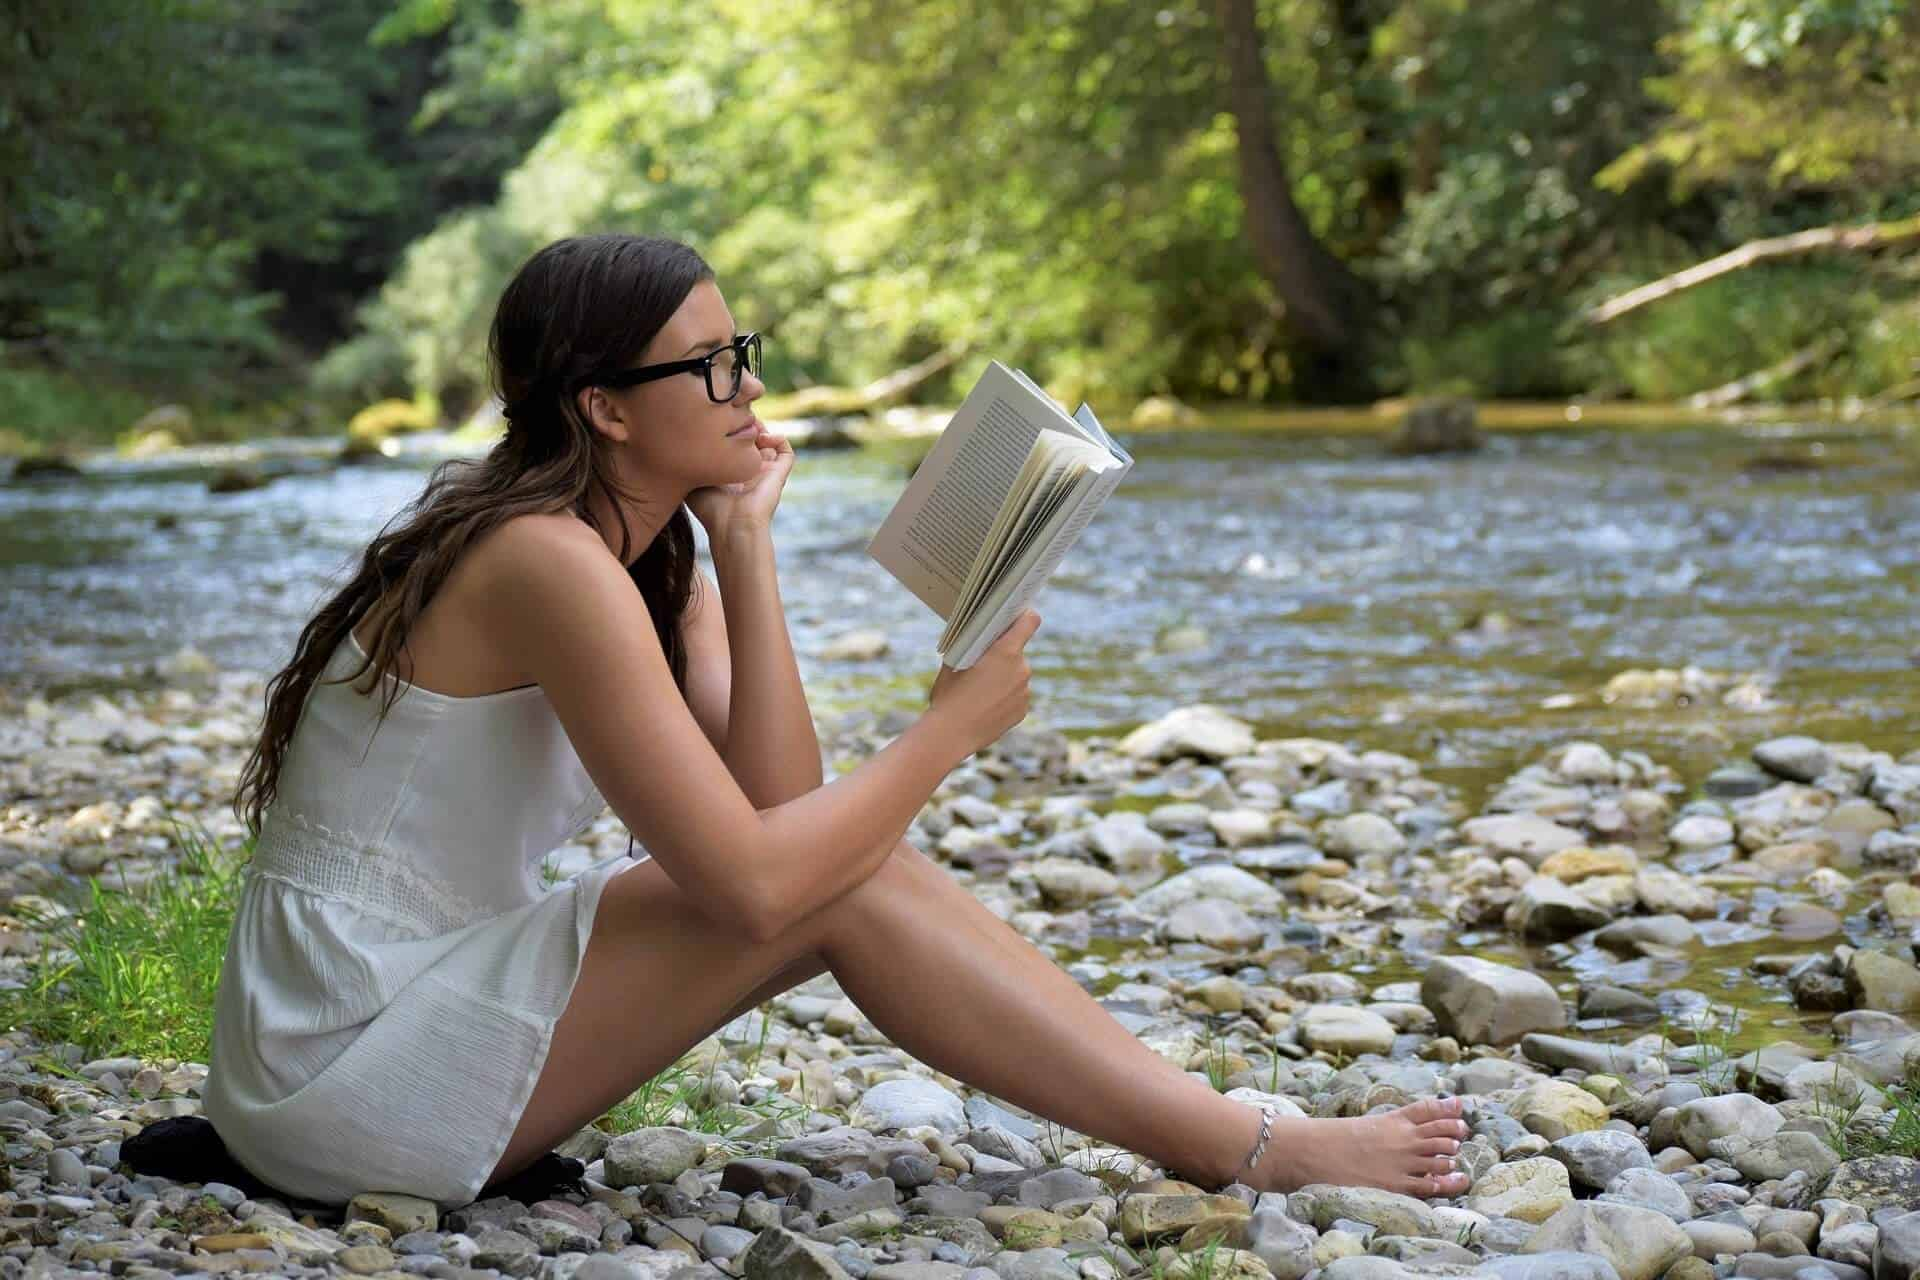 A college girl sitting on the side of a river reading a book